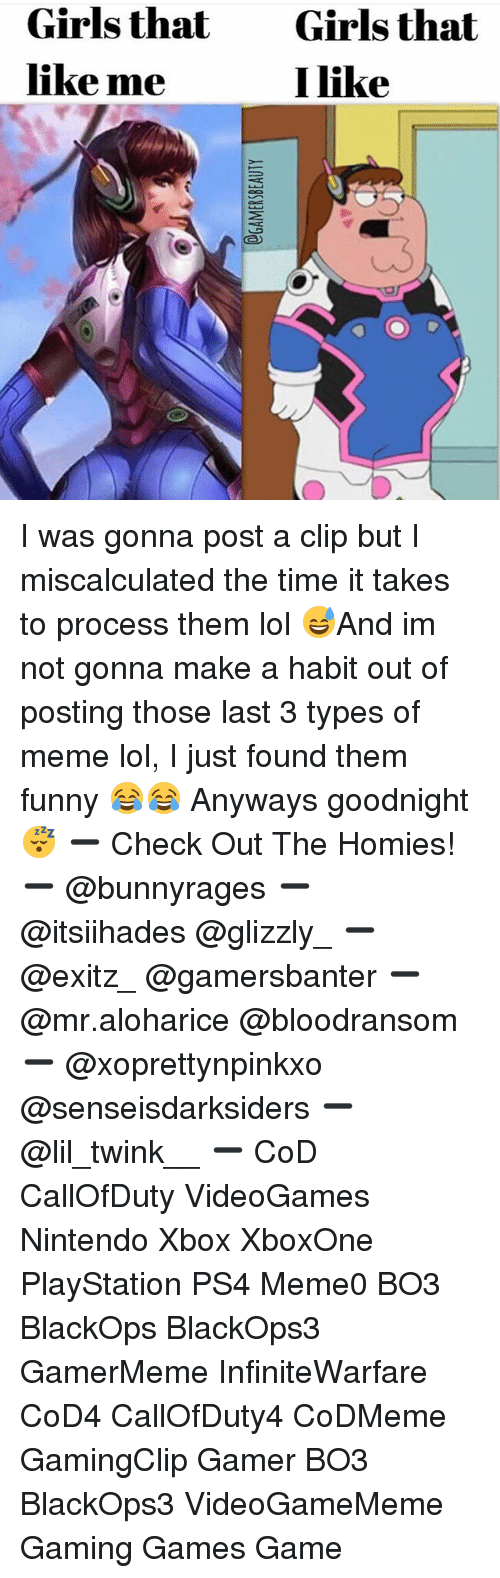 Meme Lol: Girls that  like me  Girls that  I like I was gonna post a clip but I miscalculated the time it takes to process them lol 😅And im not gonna make a habit out of posting those last 3 types of meme lol, I just found them funny 😂😂 Anyways goodnight 😴 ➖ Check Out The Homies! ➖ @bunnyrages ➖ @itsiihades @glizzly_ ➖ @exitz_ @gamersbanter ➖ @mr.aloharice @bloodransom ➖ @xoprettynpinkxo @senseisdarksiders ➖ @lil_twink__ ➖ CoD CallOfDuty VideoGames Nintendo Xbox XboxOne PlayStation PS4 Meme0 BO3 BlackOps BlackOps3 GamerMeme InfiniteWarfare CoD4 CallOfDuty4 CoDMeme GamingClip Gamer BO3 BlackOps3 VideoGameMeme Gaming Games Game